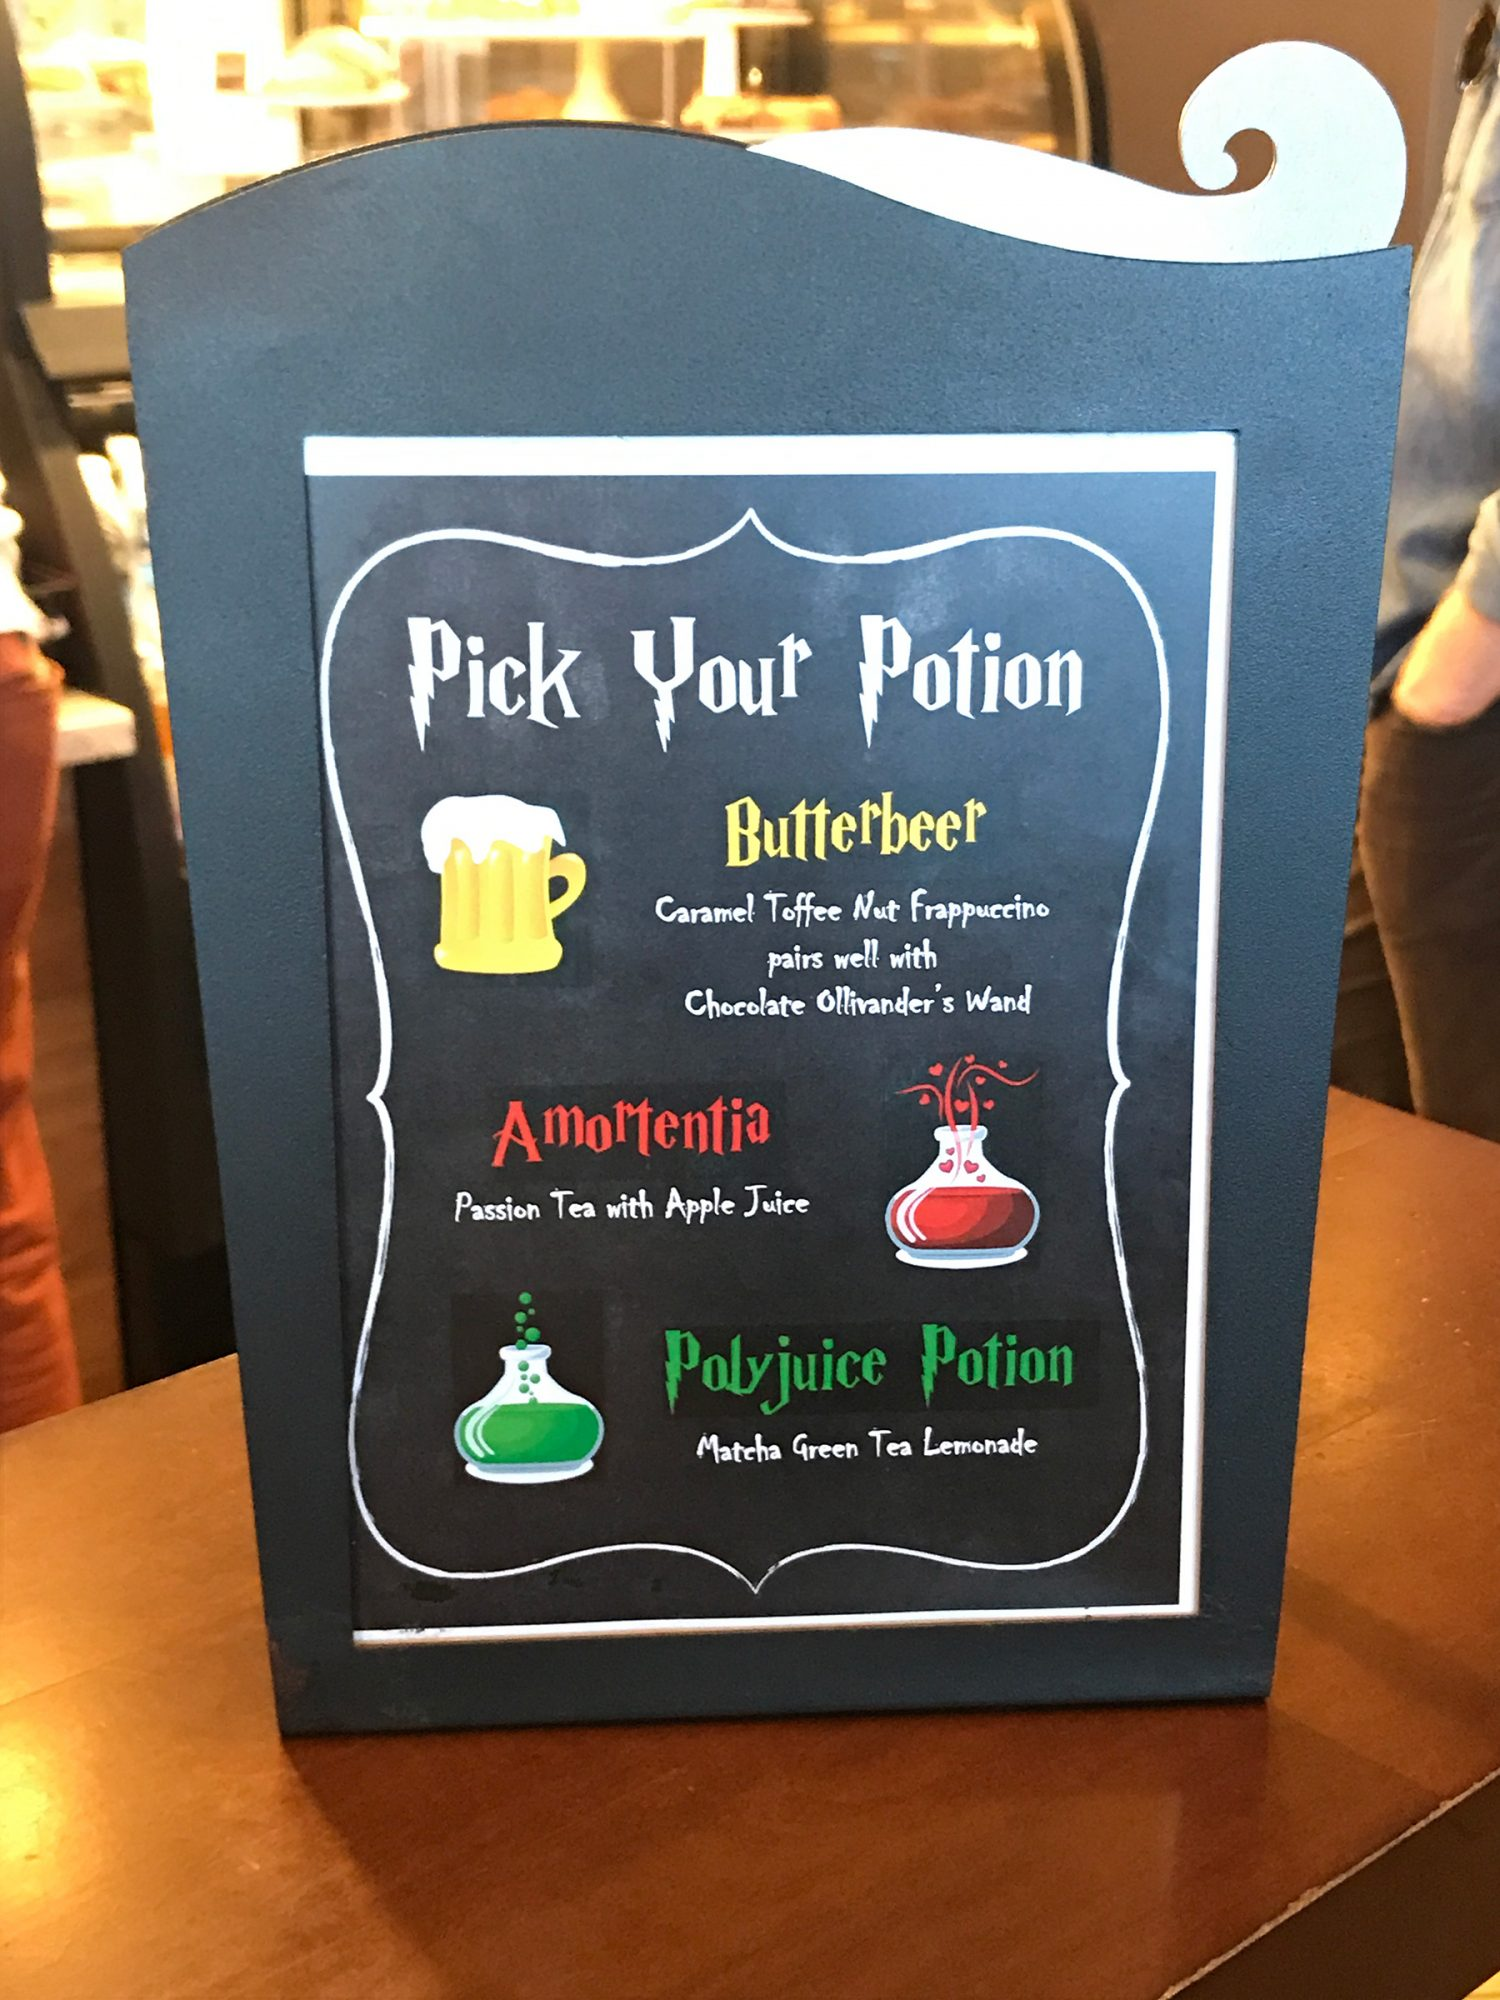 Pick your potion